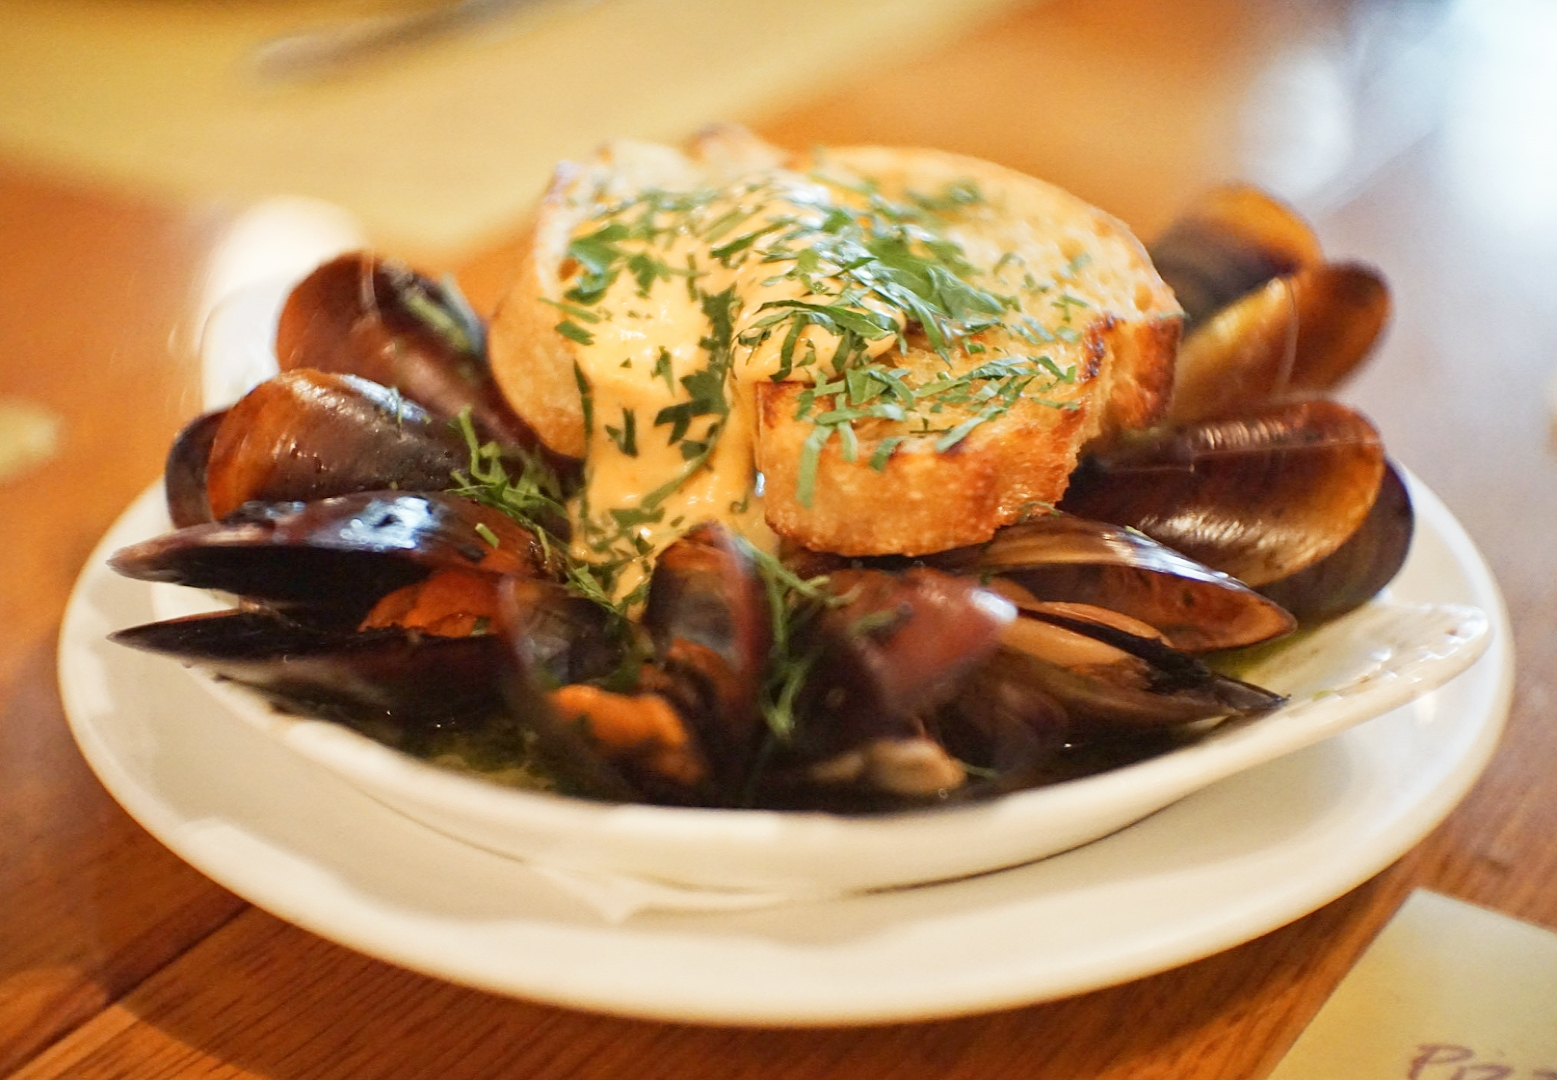 Mussels baked in white wine, served with crispy bread and an amazing salsa Calabrese sauce.